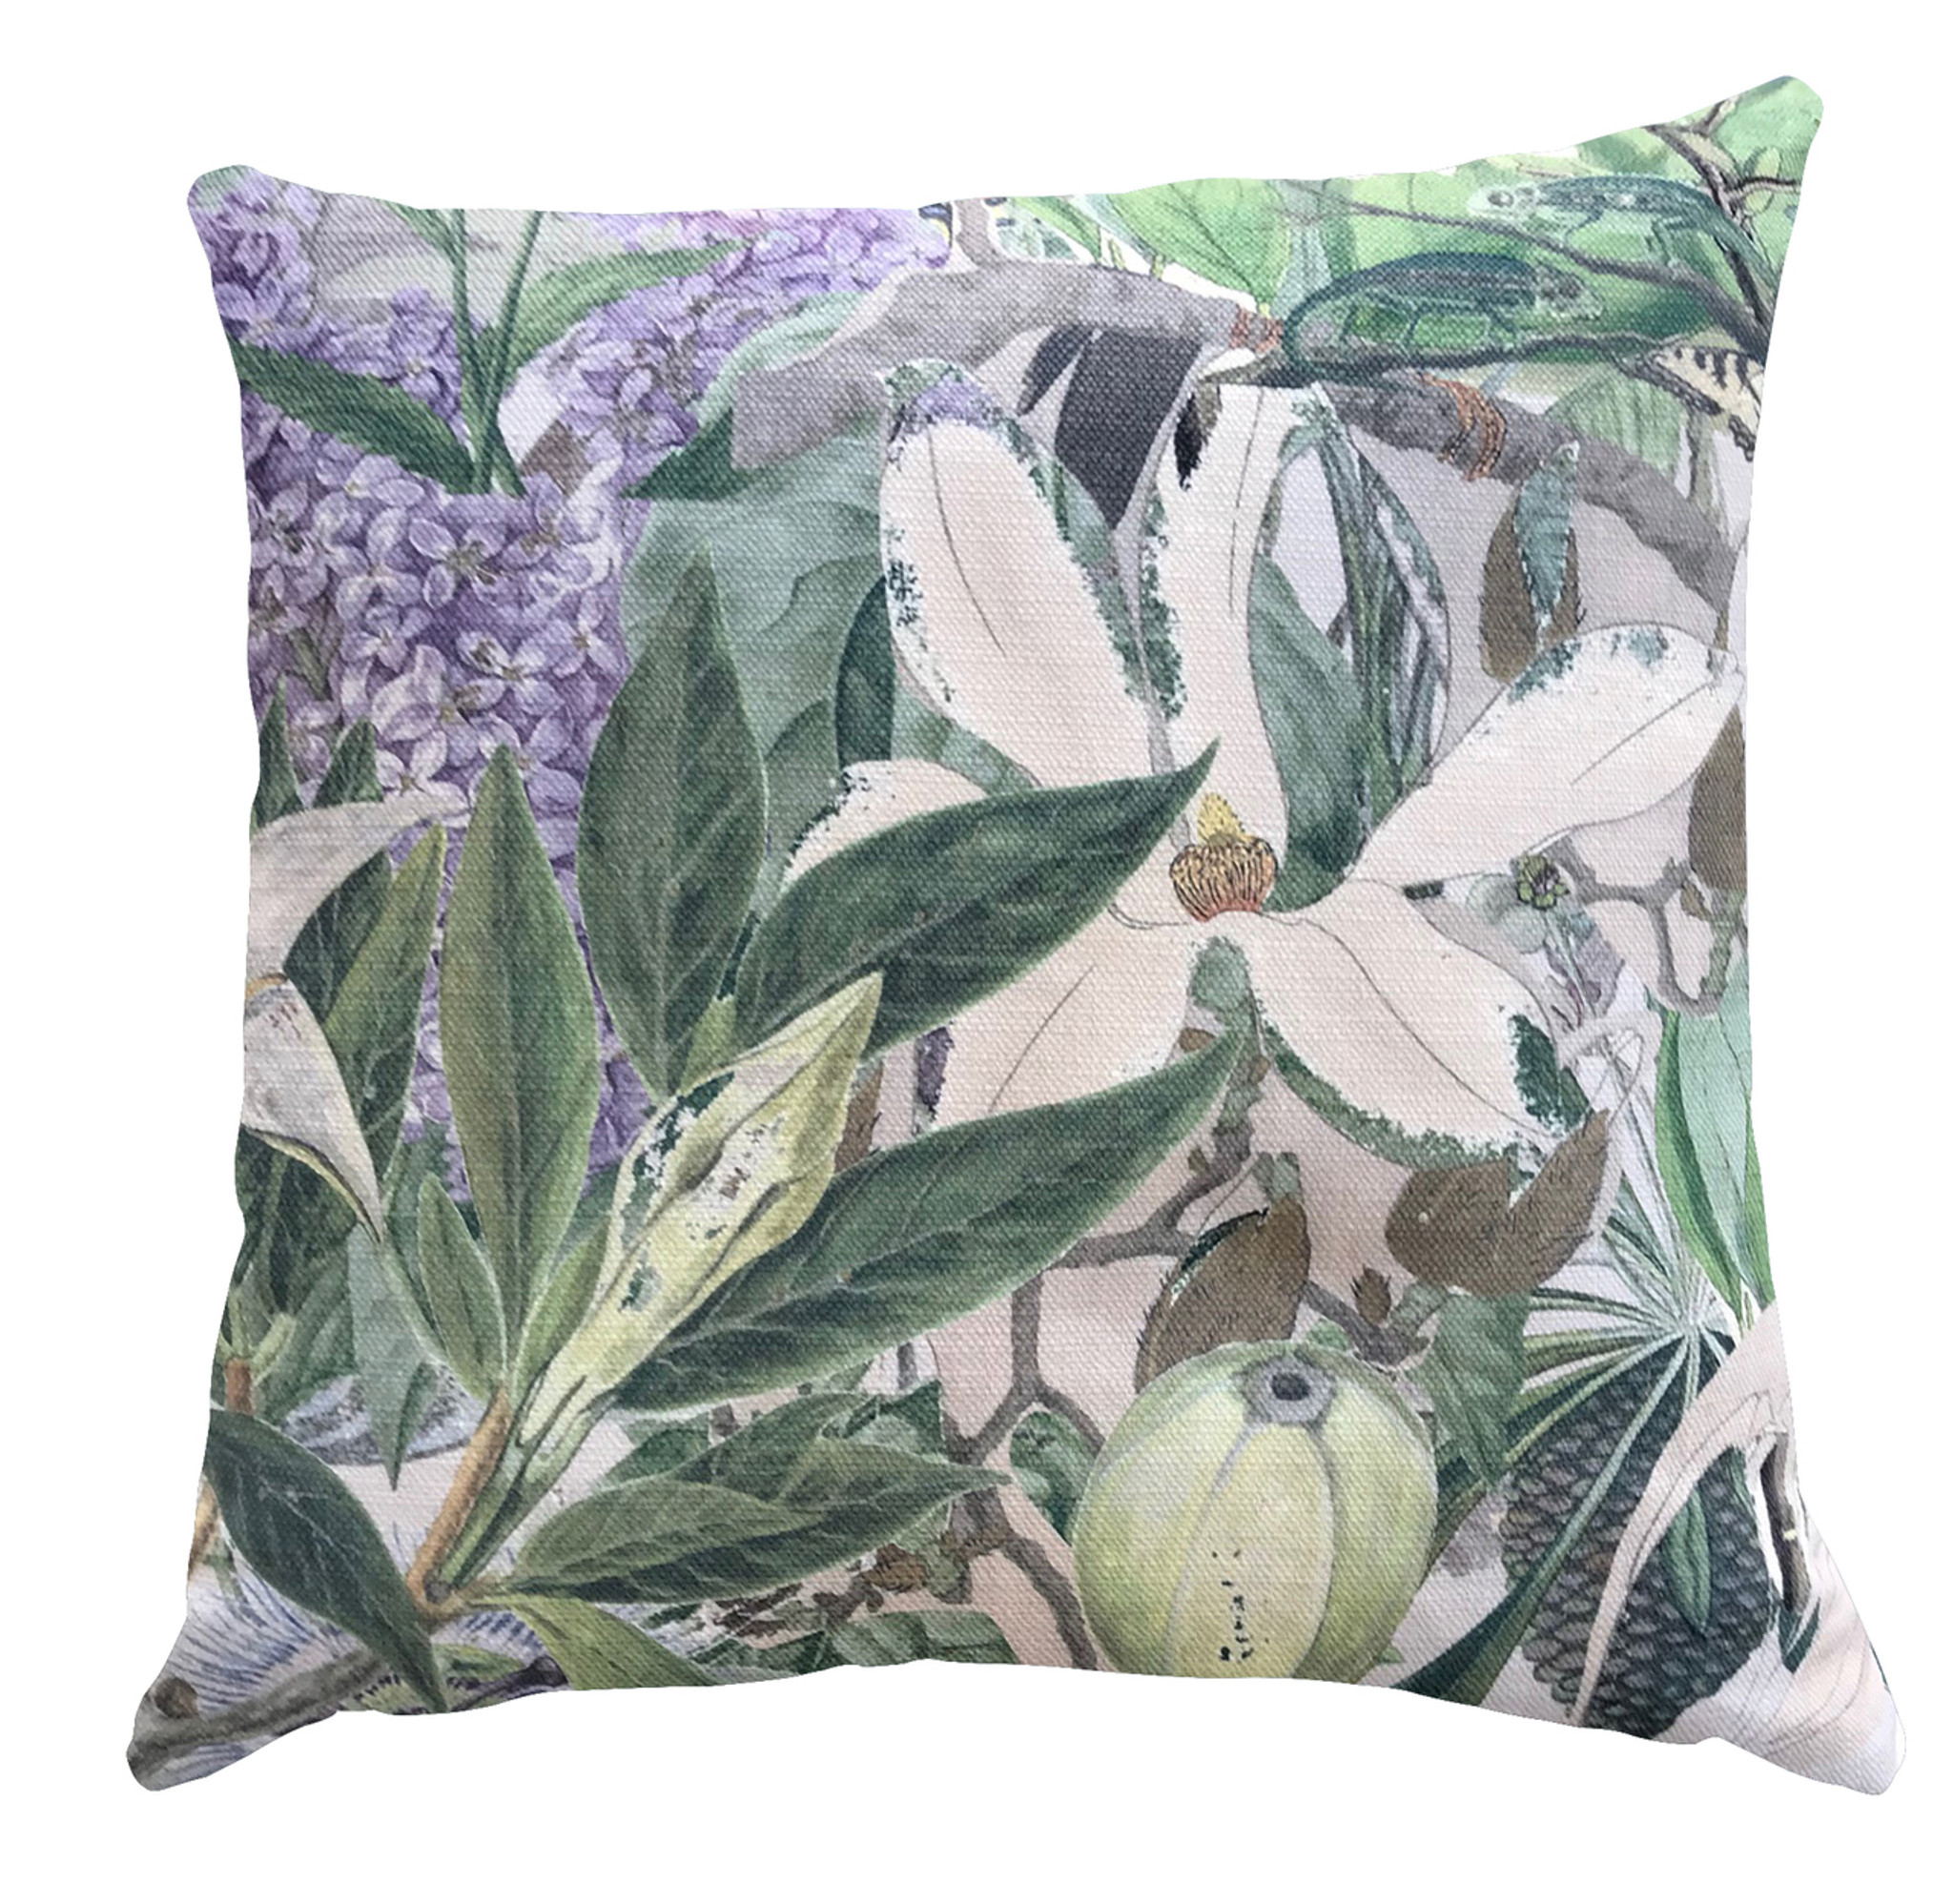 Outdoor Cushion Cover - Wild Bunch - Wisteria